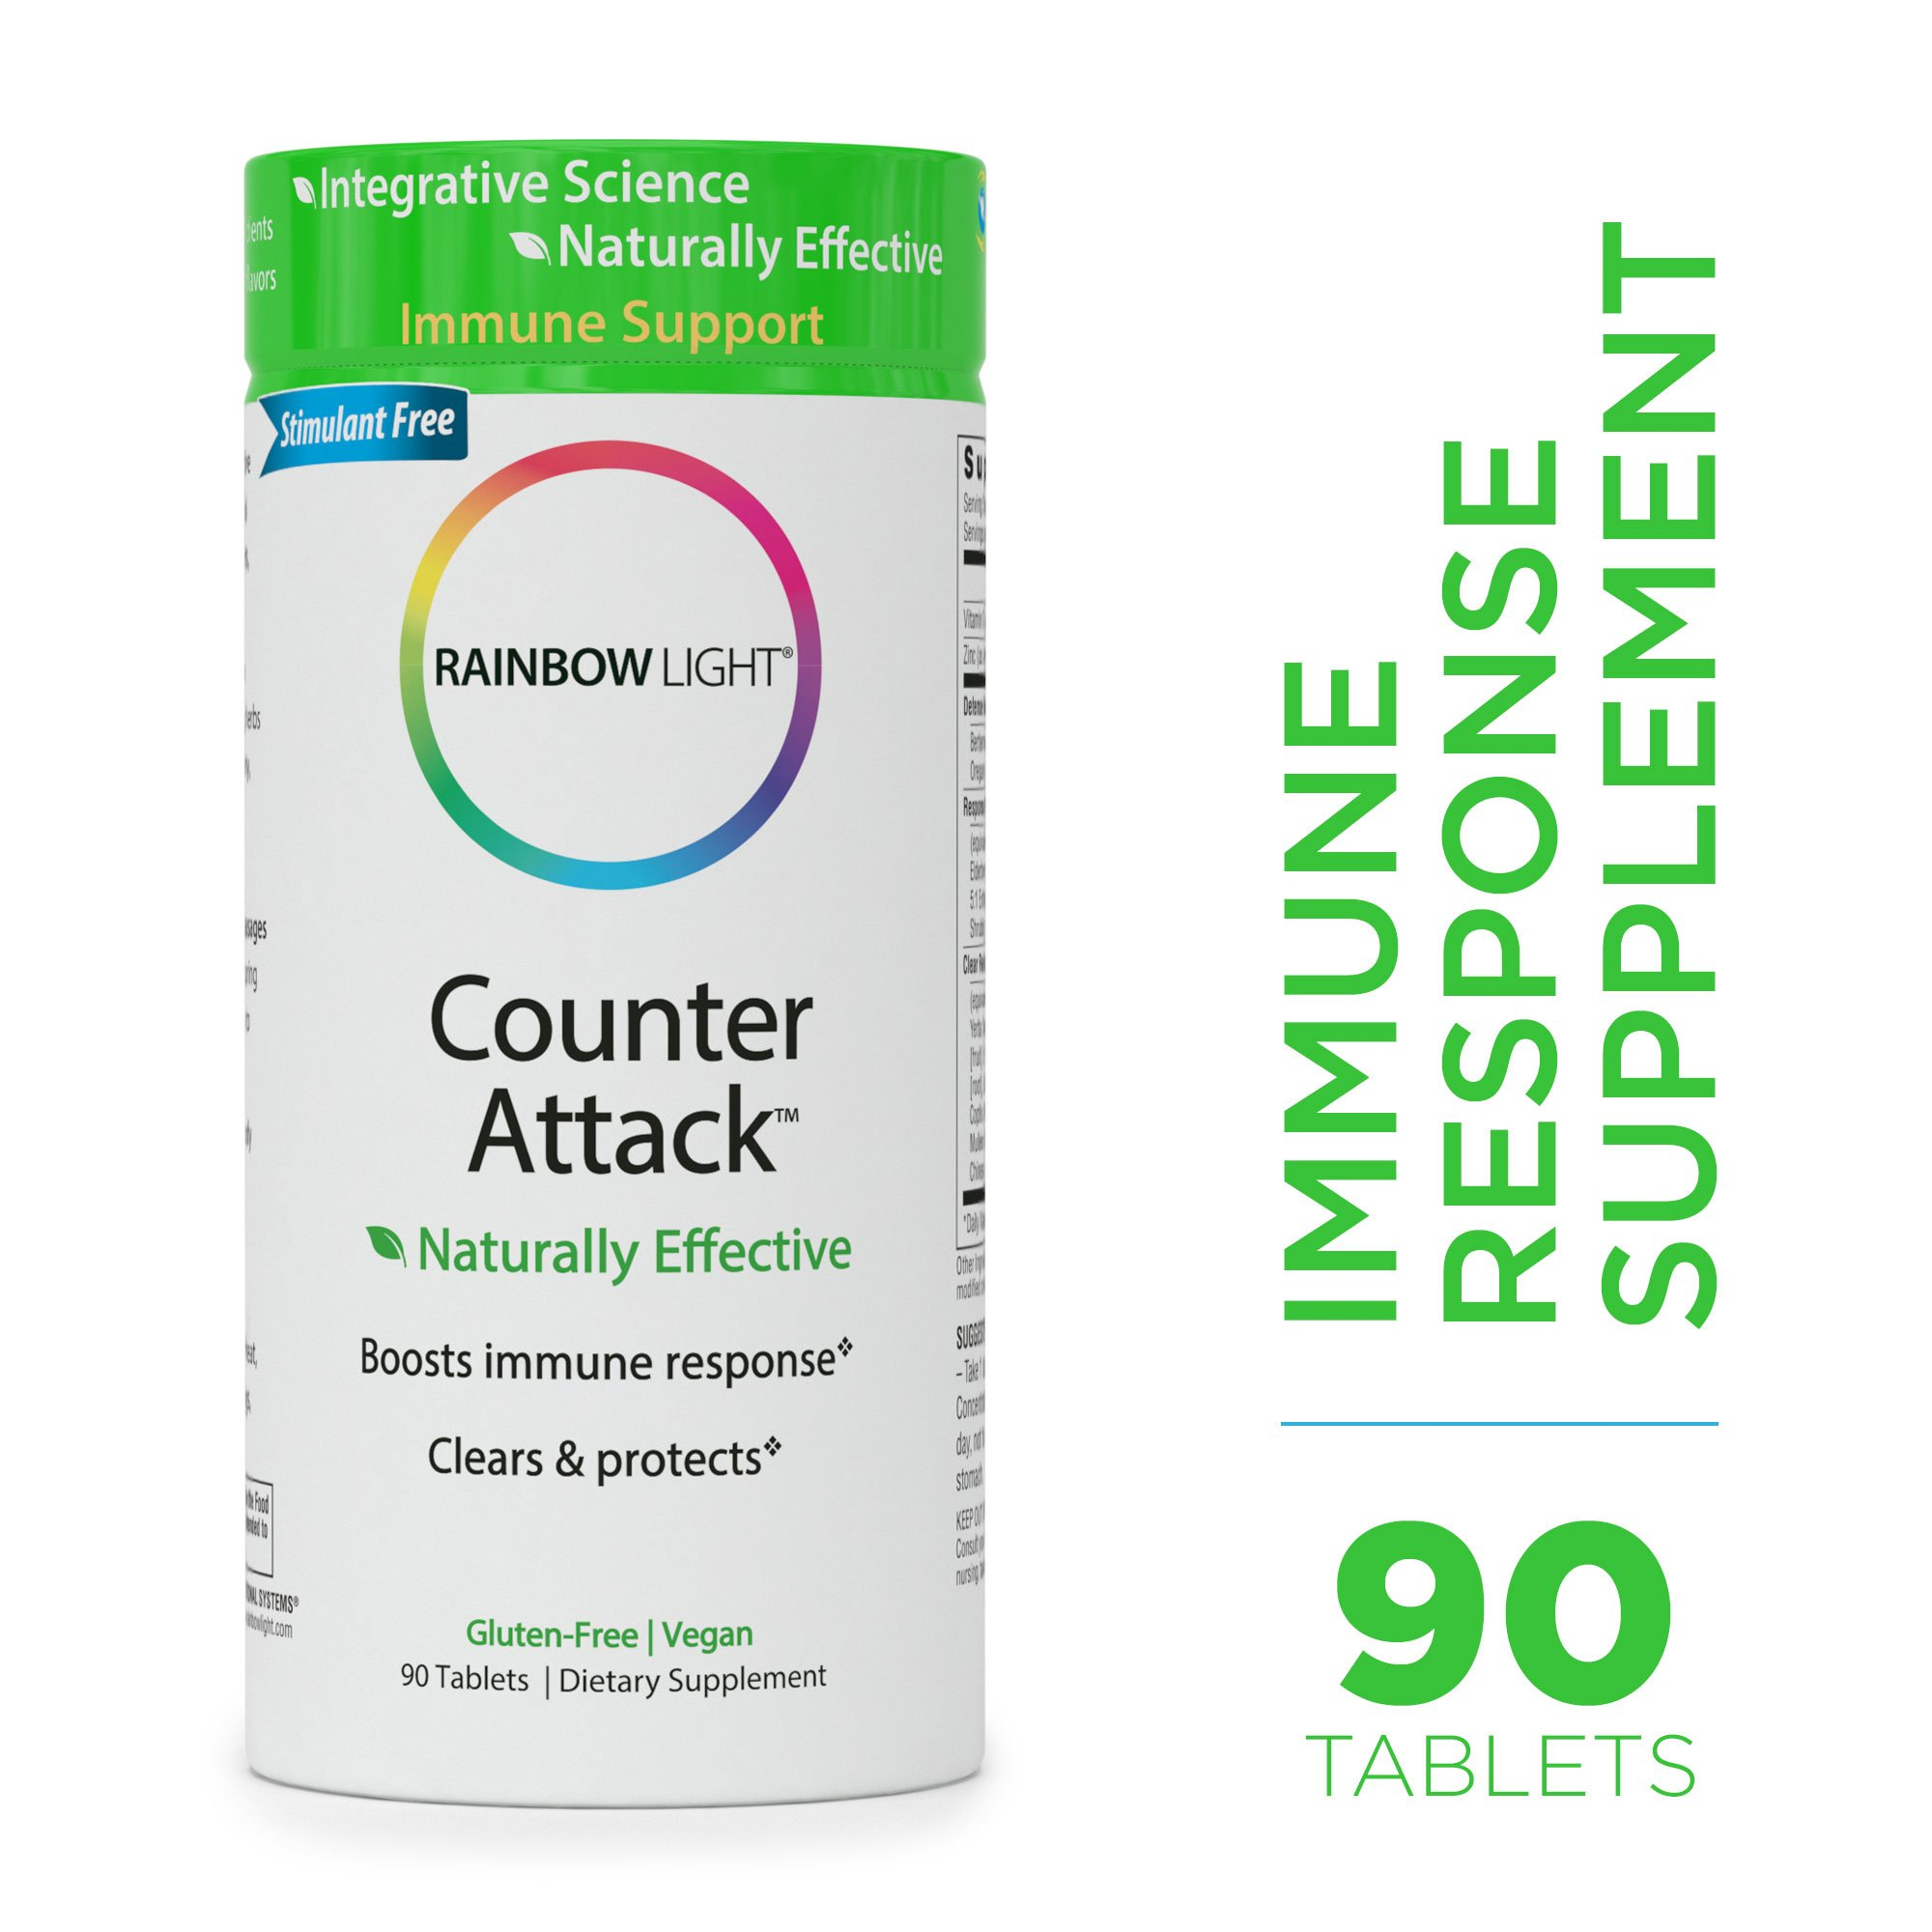 Rainbow Light - Counter Attack - Vitamin C and Zinc Supplement; Vegan and Gluten-Free; Herbal Blend Provides Immune Support, Boosts Immune System Health and Response - 90 Tablets by Rainbow Light